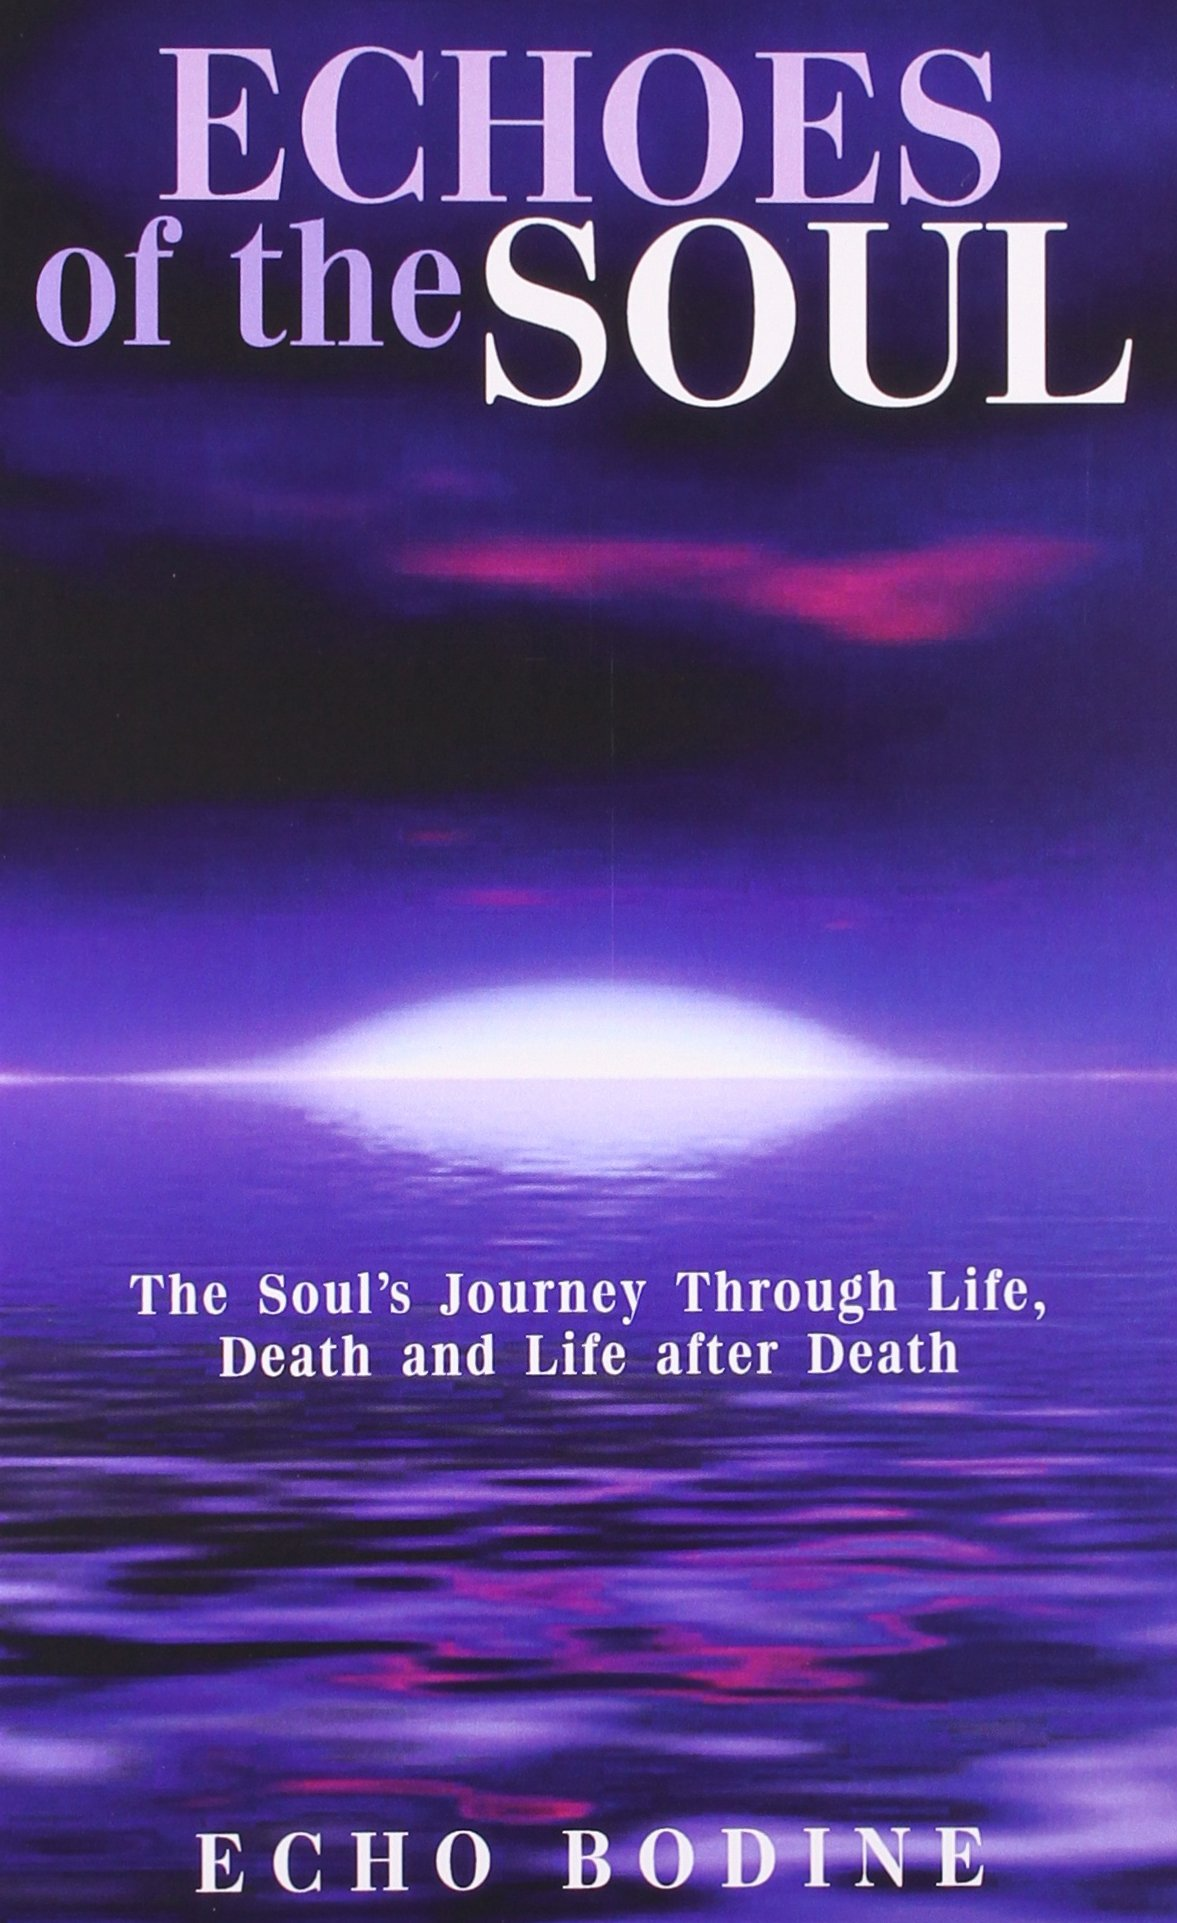 Amazon buy echoes of the soul the souls journey through life amazon buy echoes of the soul the souls journey through life death and life after death book online at low prices in india echoes of the soul the fandeluxe Image collections